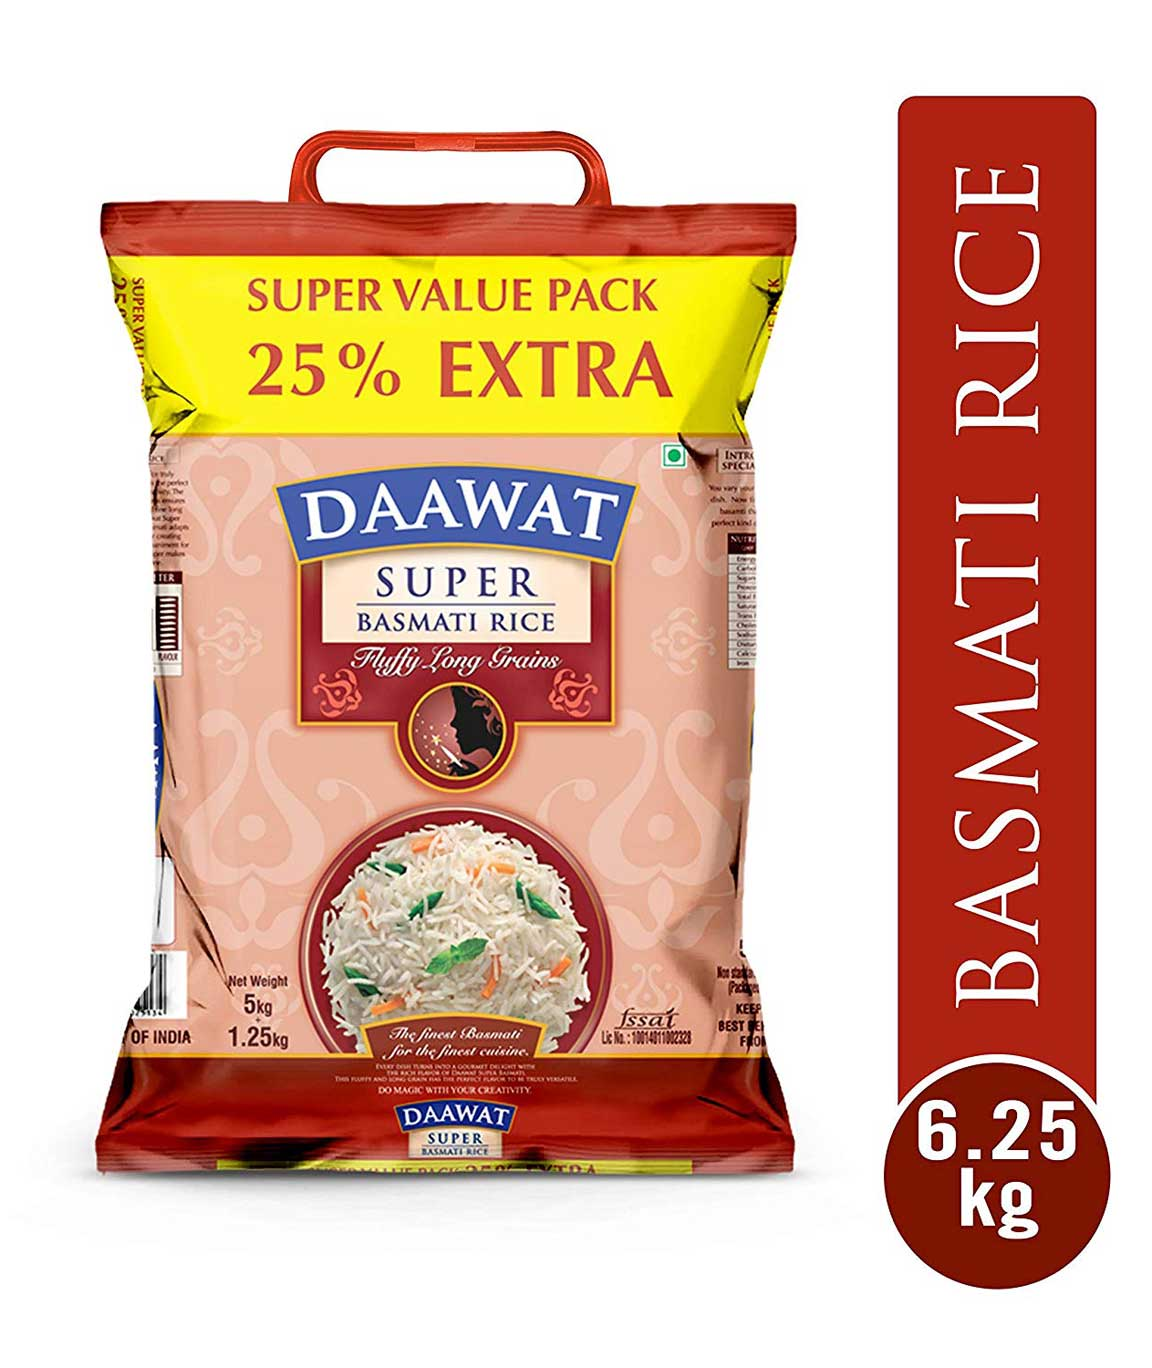 Daawat Super Basmati 5kg with Free 25 Percent Extra